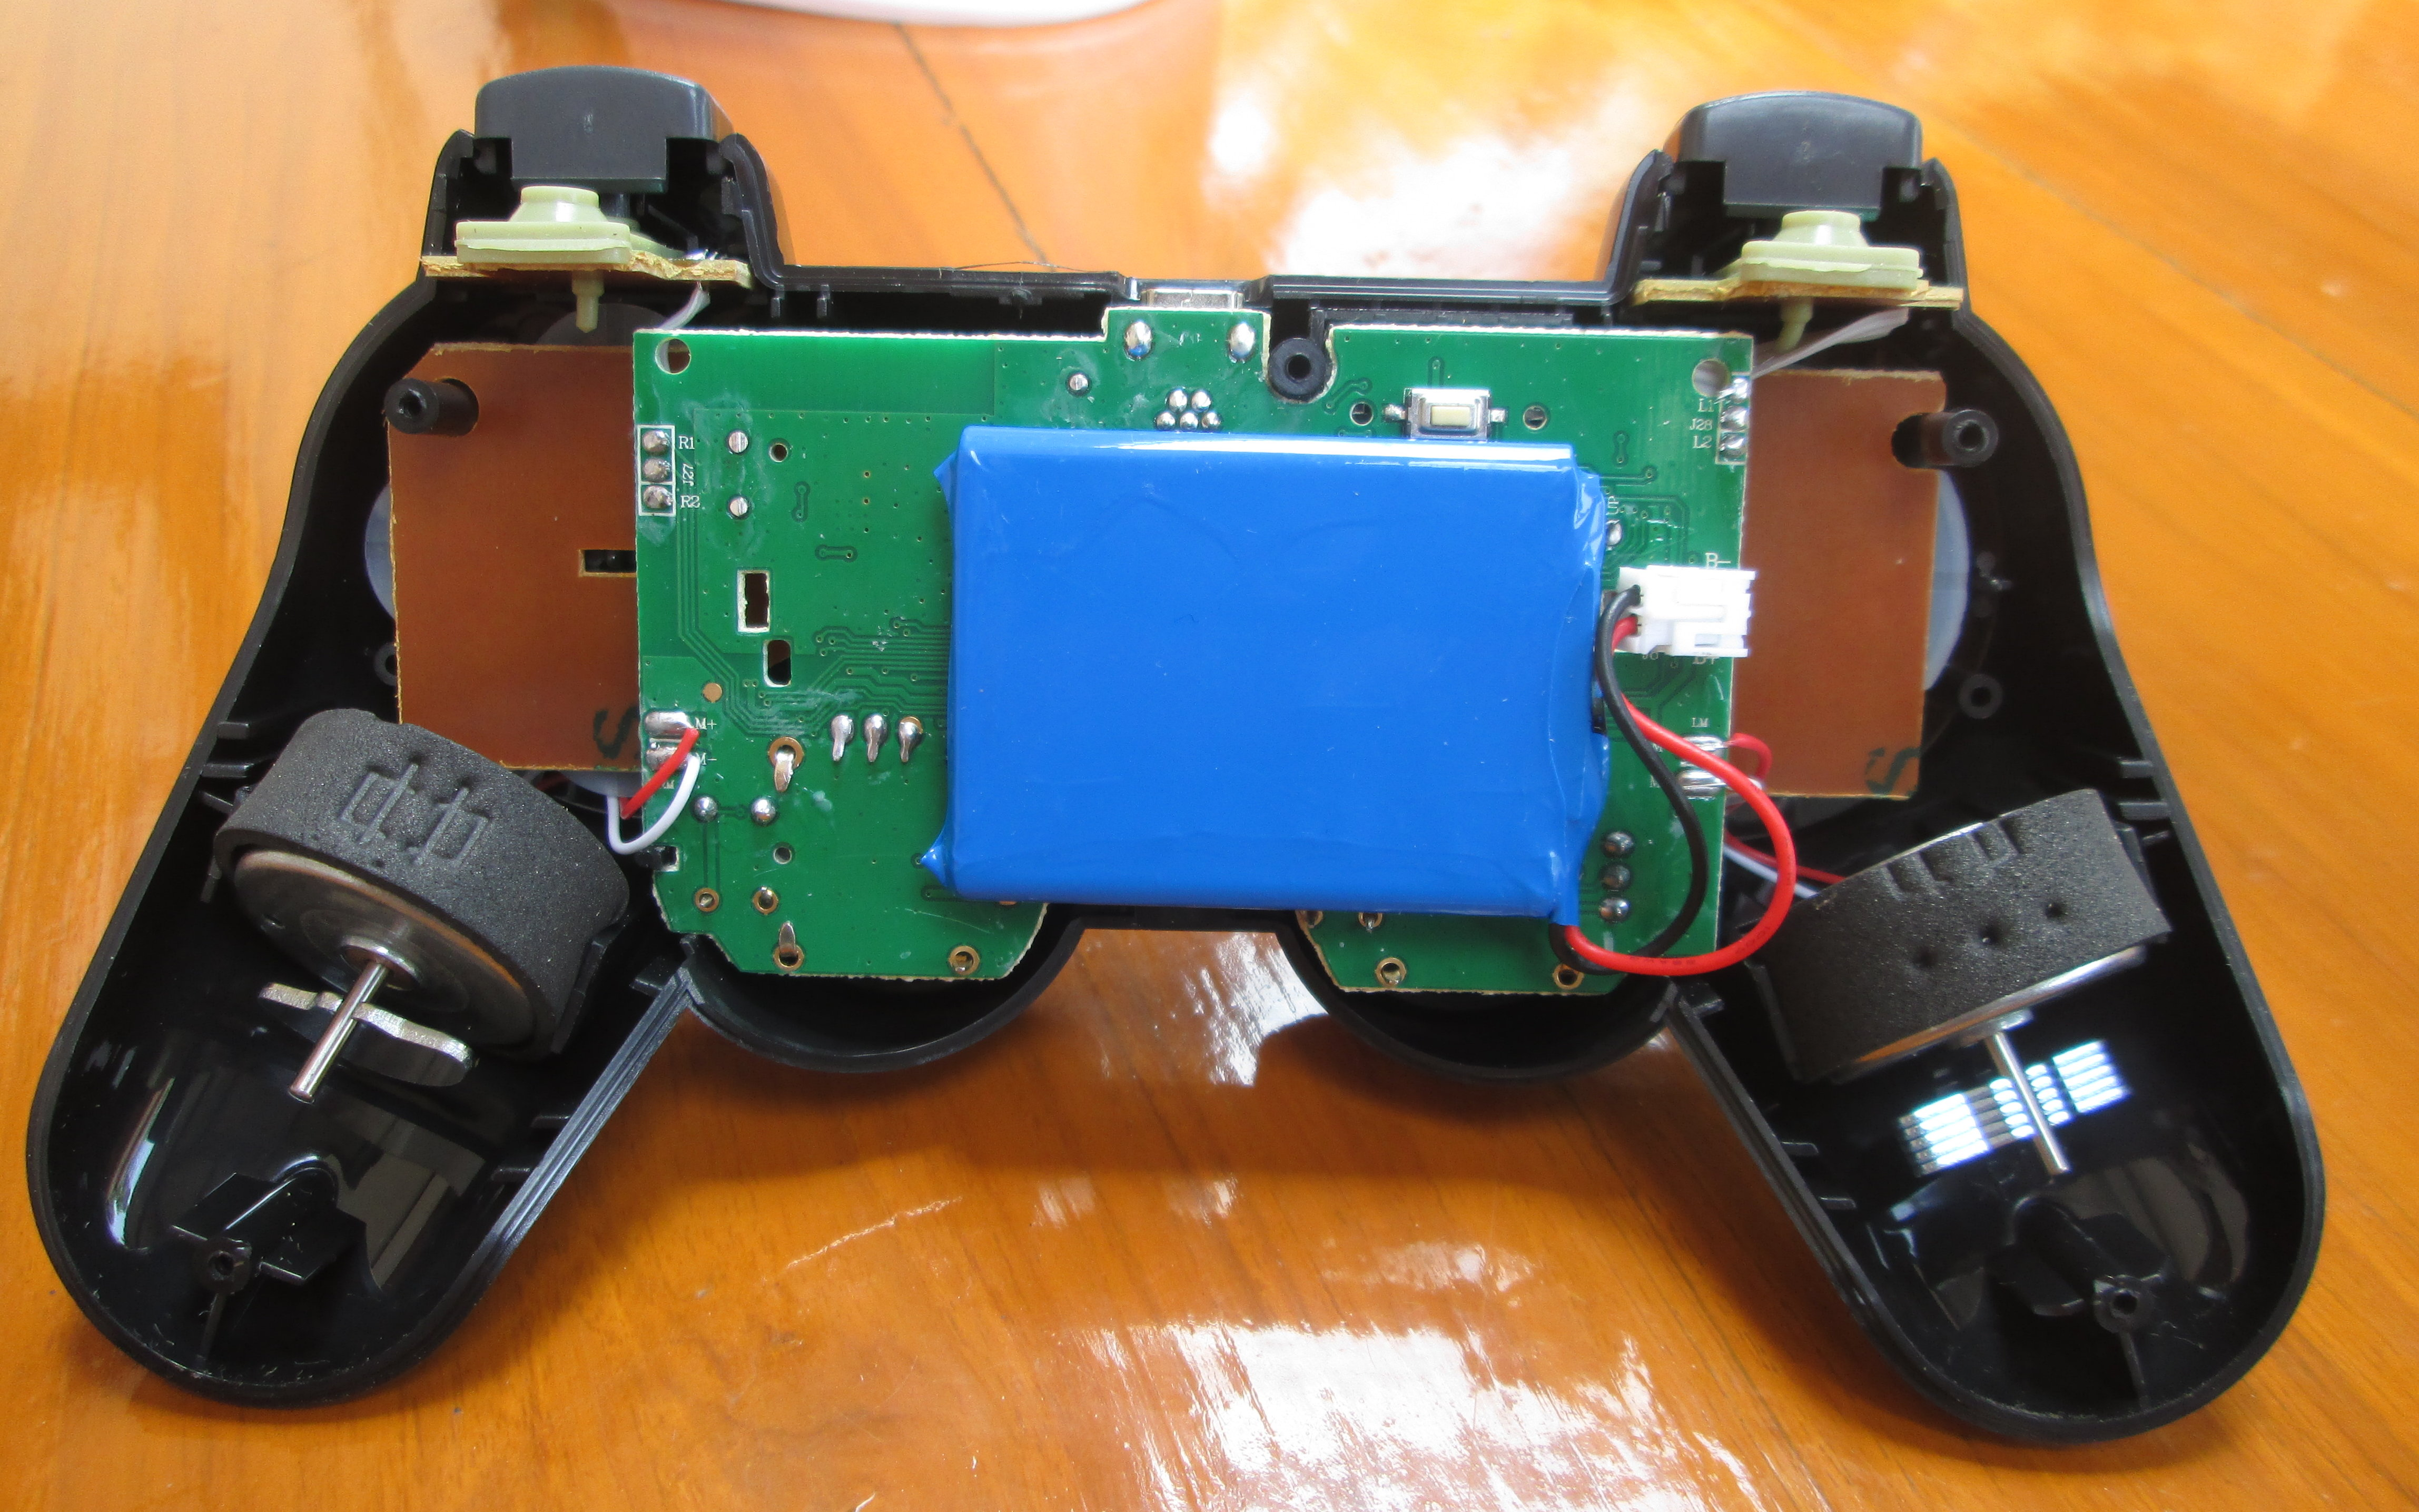 How to Play Games in Android mini PCs / STBs With a PS3